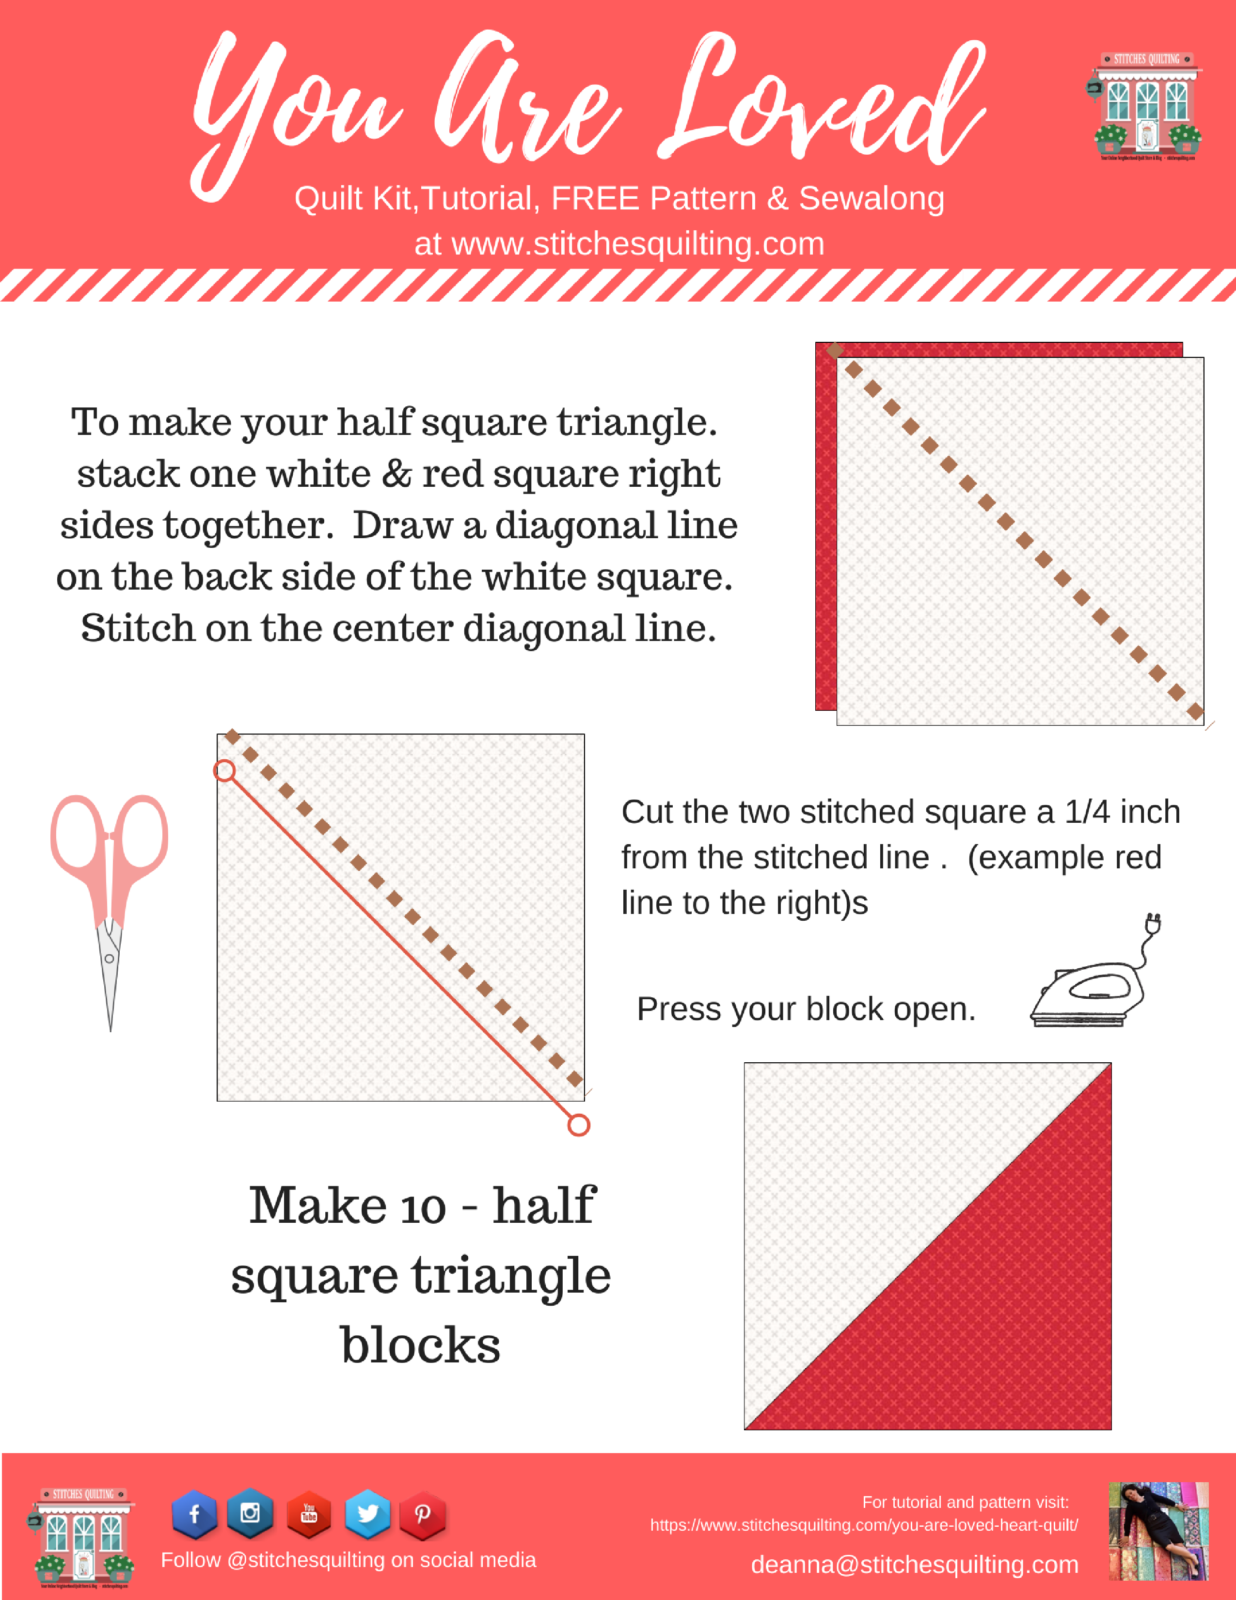 How to Make You Are Loved Half Square Triangle Quilt Block